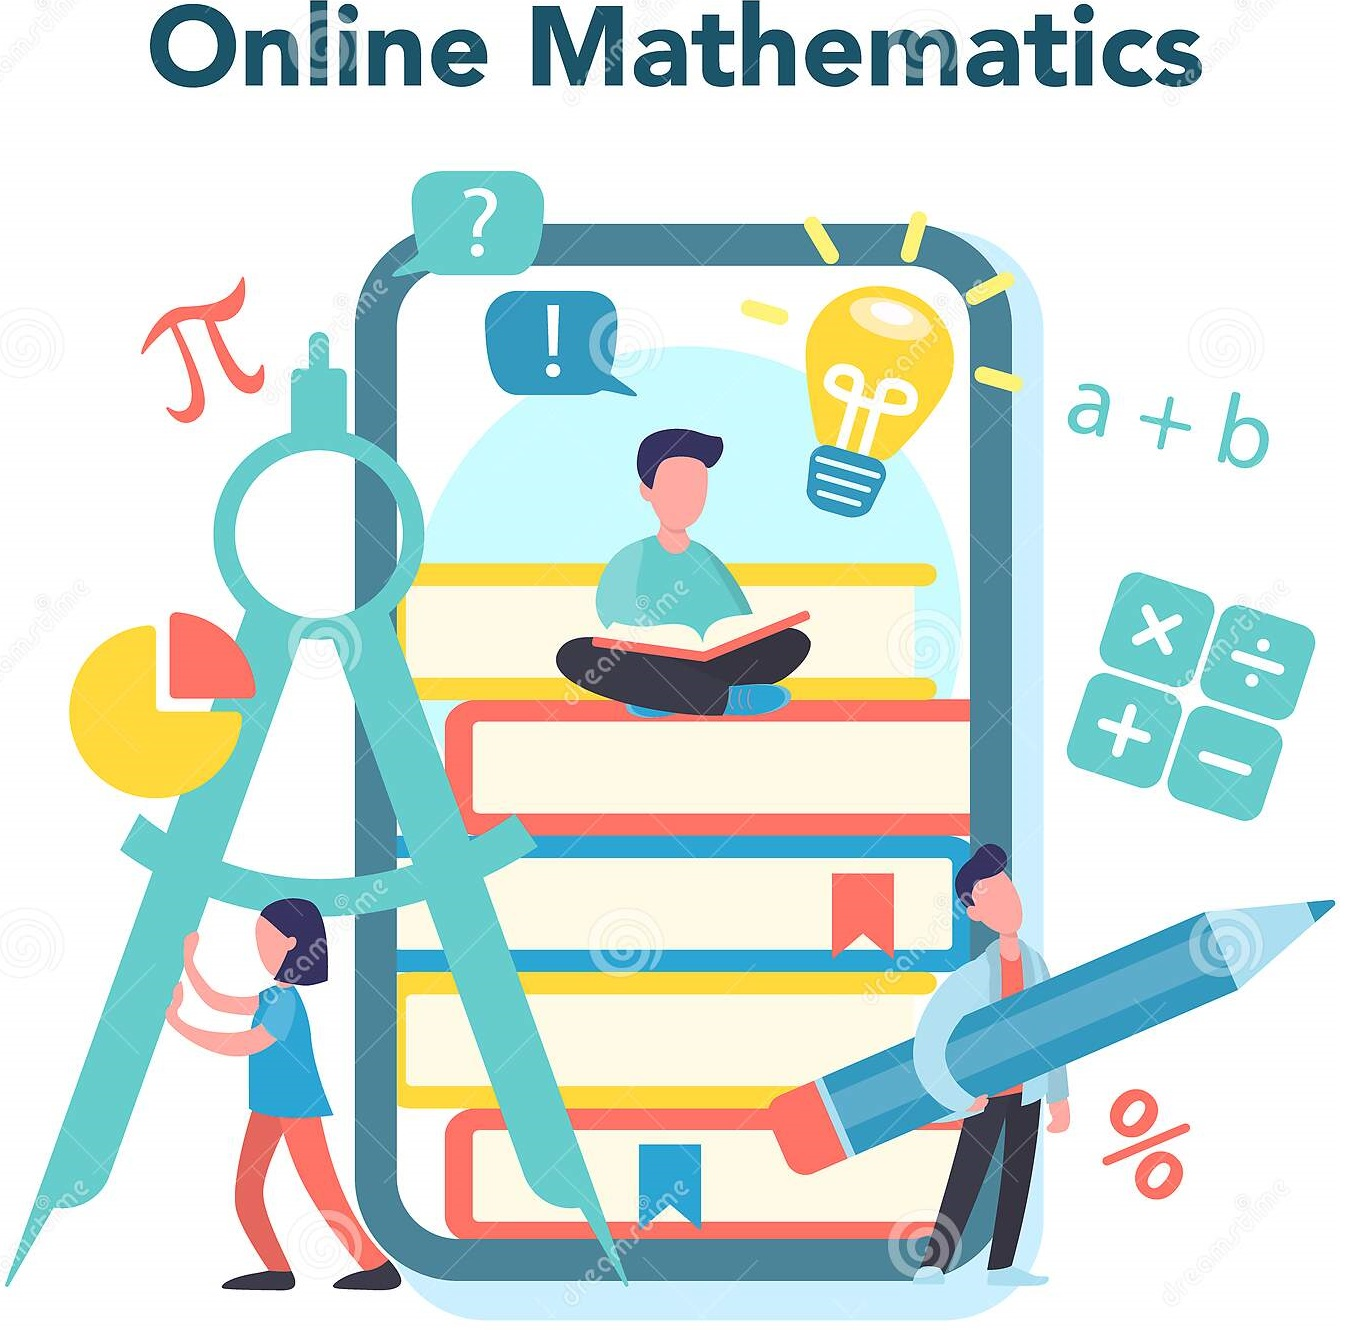 online-math-course-learning-mathematics-internet-idea-distance-education-knowledge-science-technology-engineering-181650713